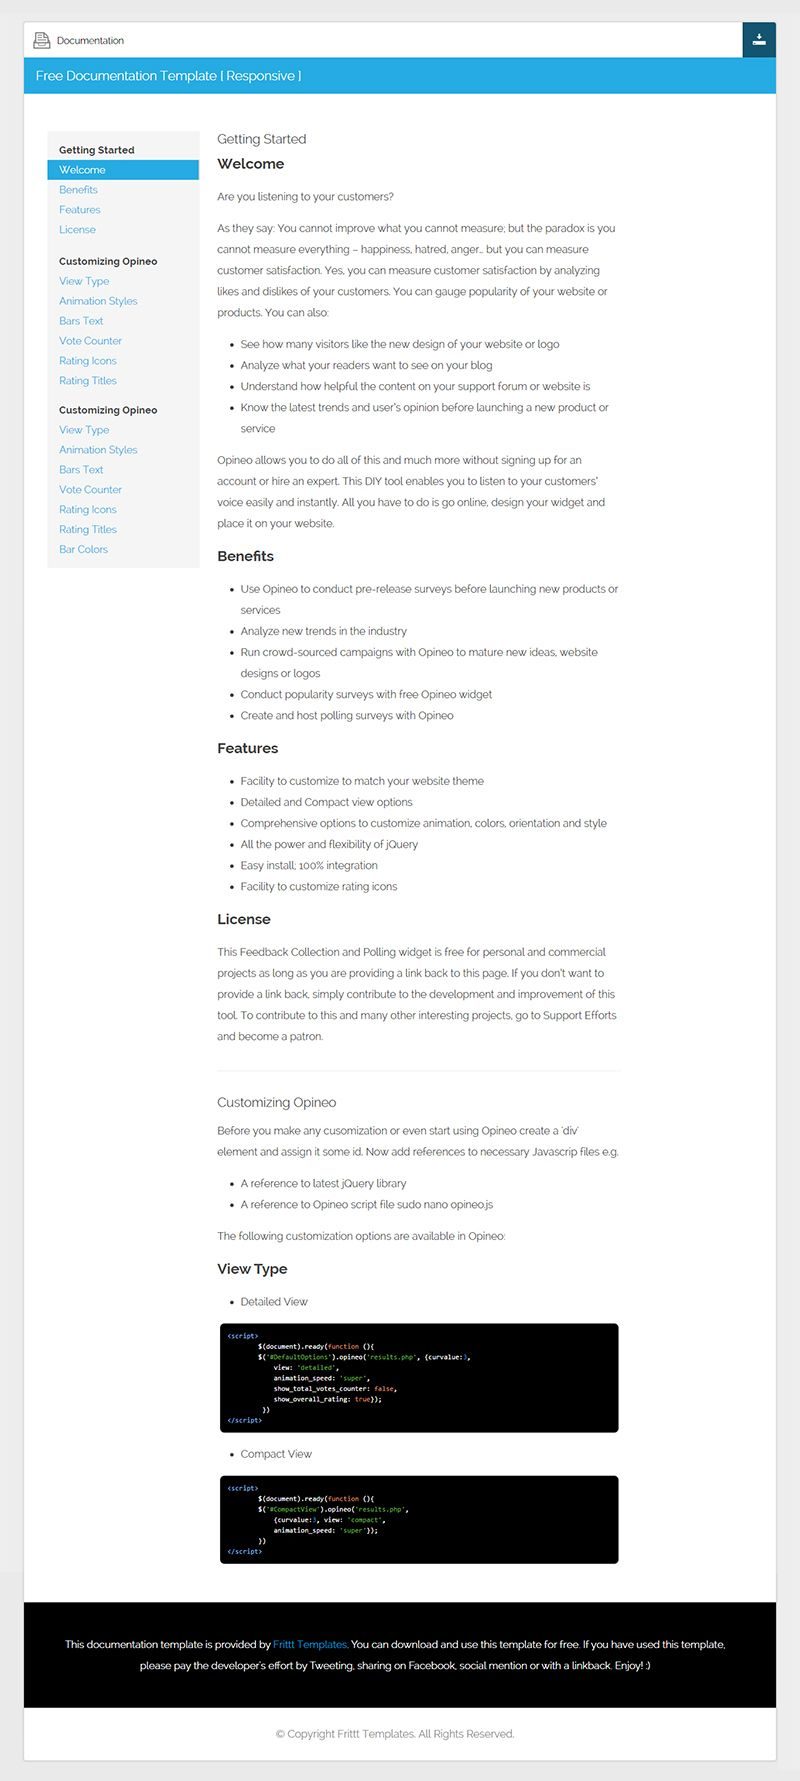 Free Documentation Html Template Docweb On Behance